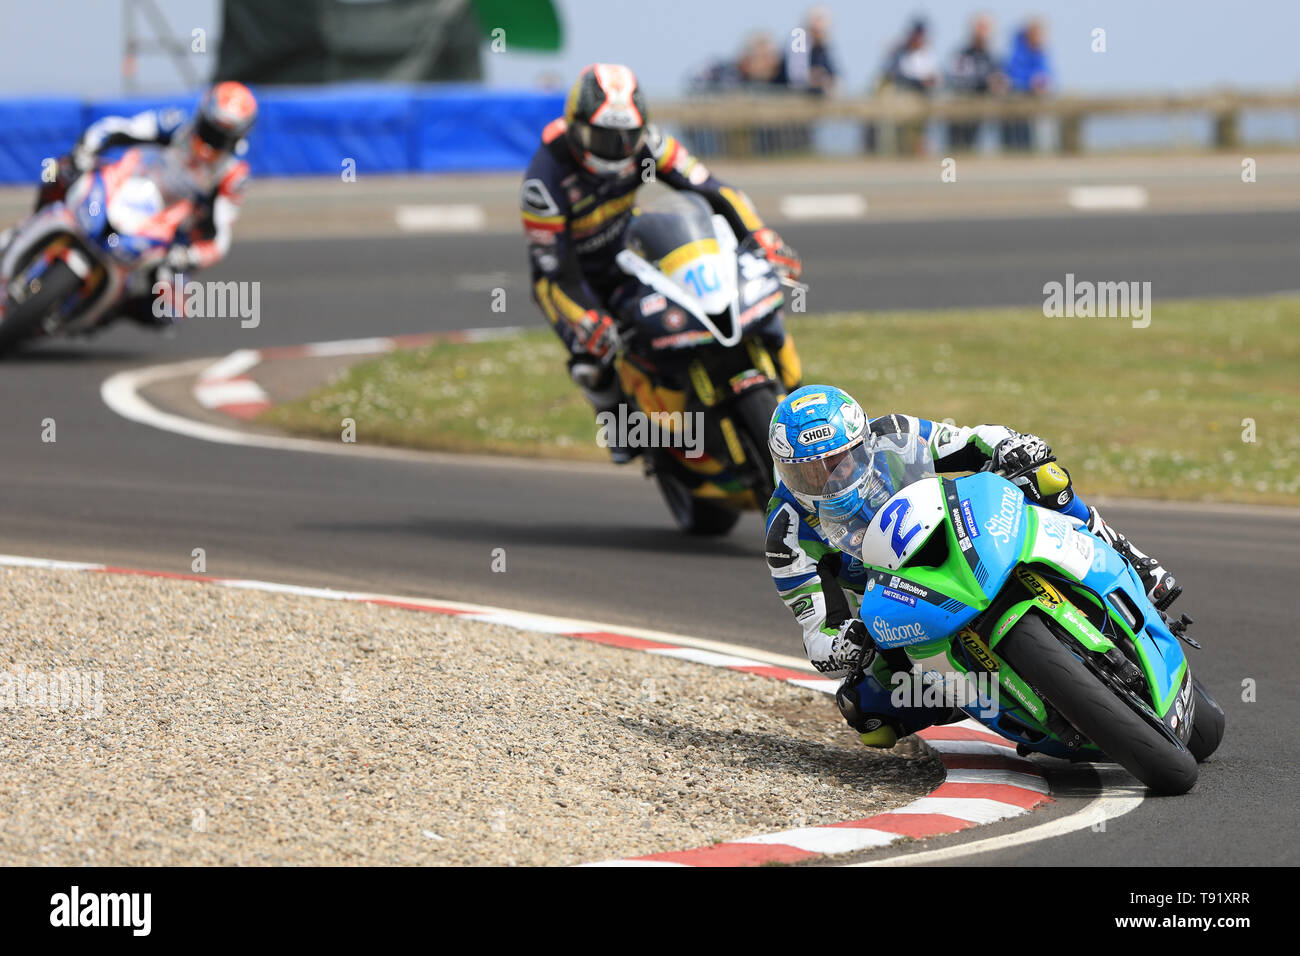 Portrush, Northern Ireland. 16th May, 2019. International North West 200 Motorcycle road racing, Thursday practice and evening racing; Dean Harrison was 2nd fastest on the Silicone Engineering Racing Kawasaki during the SuperSport qualifying session Credit: Action Plus Sports/Alamy Live News - Stock Image